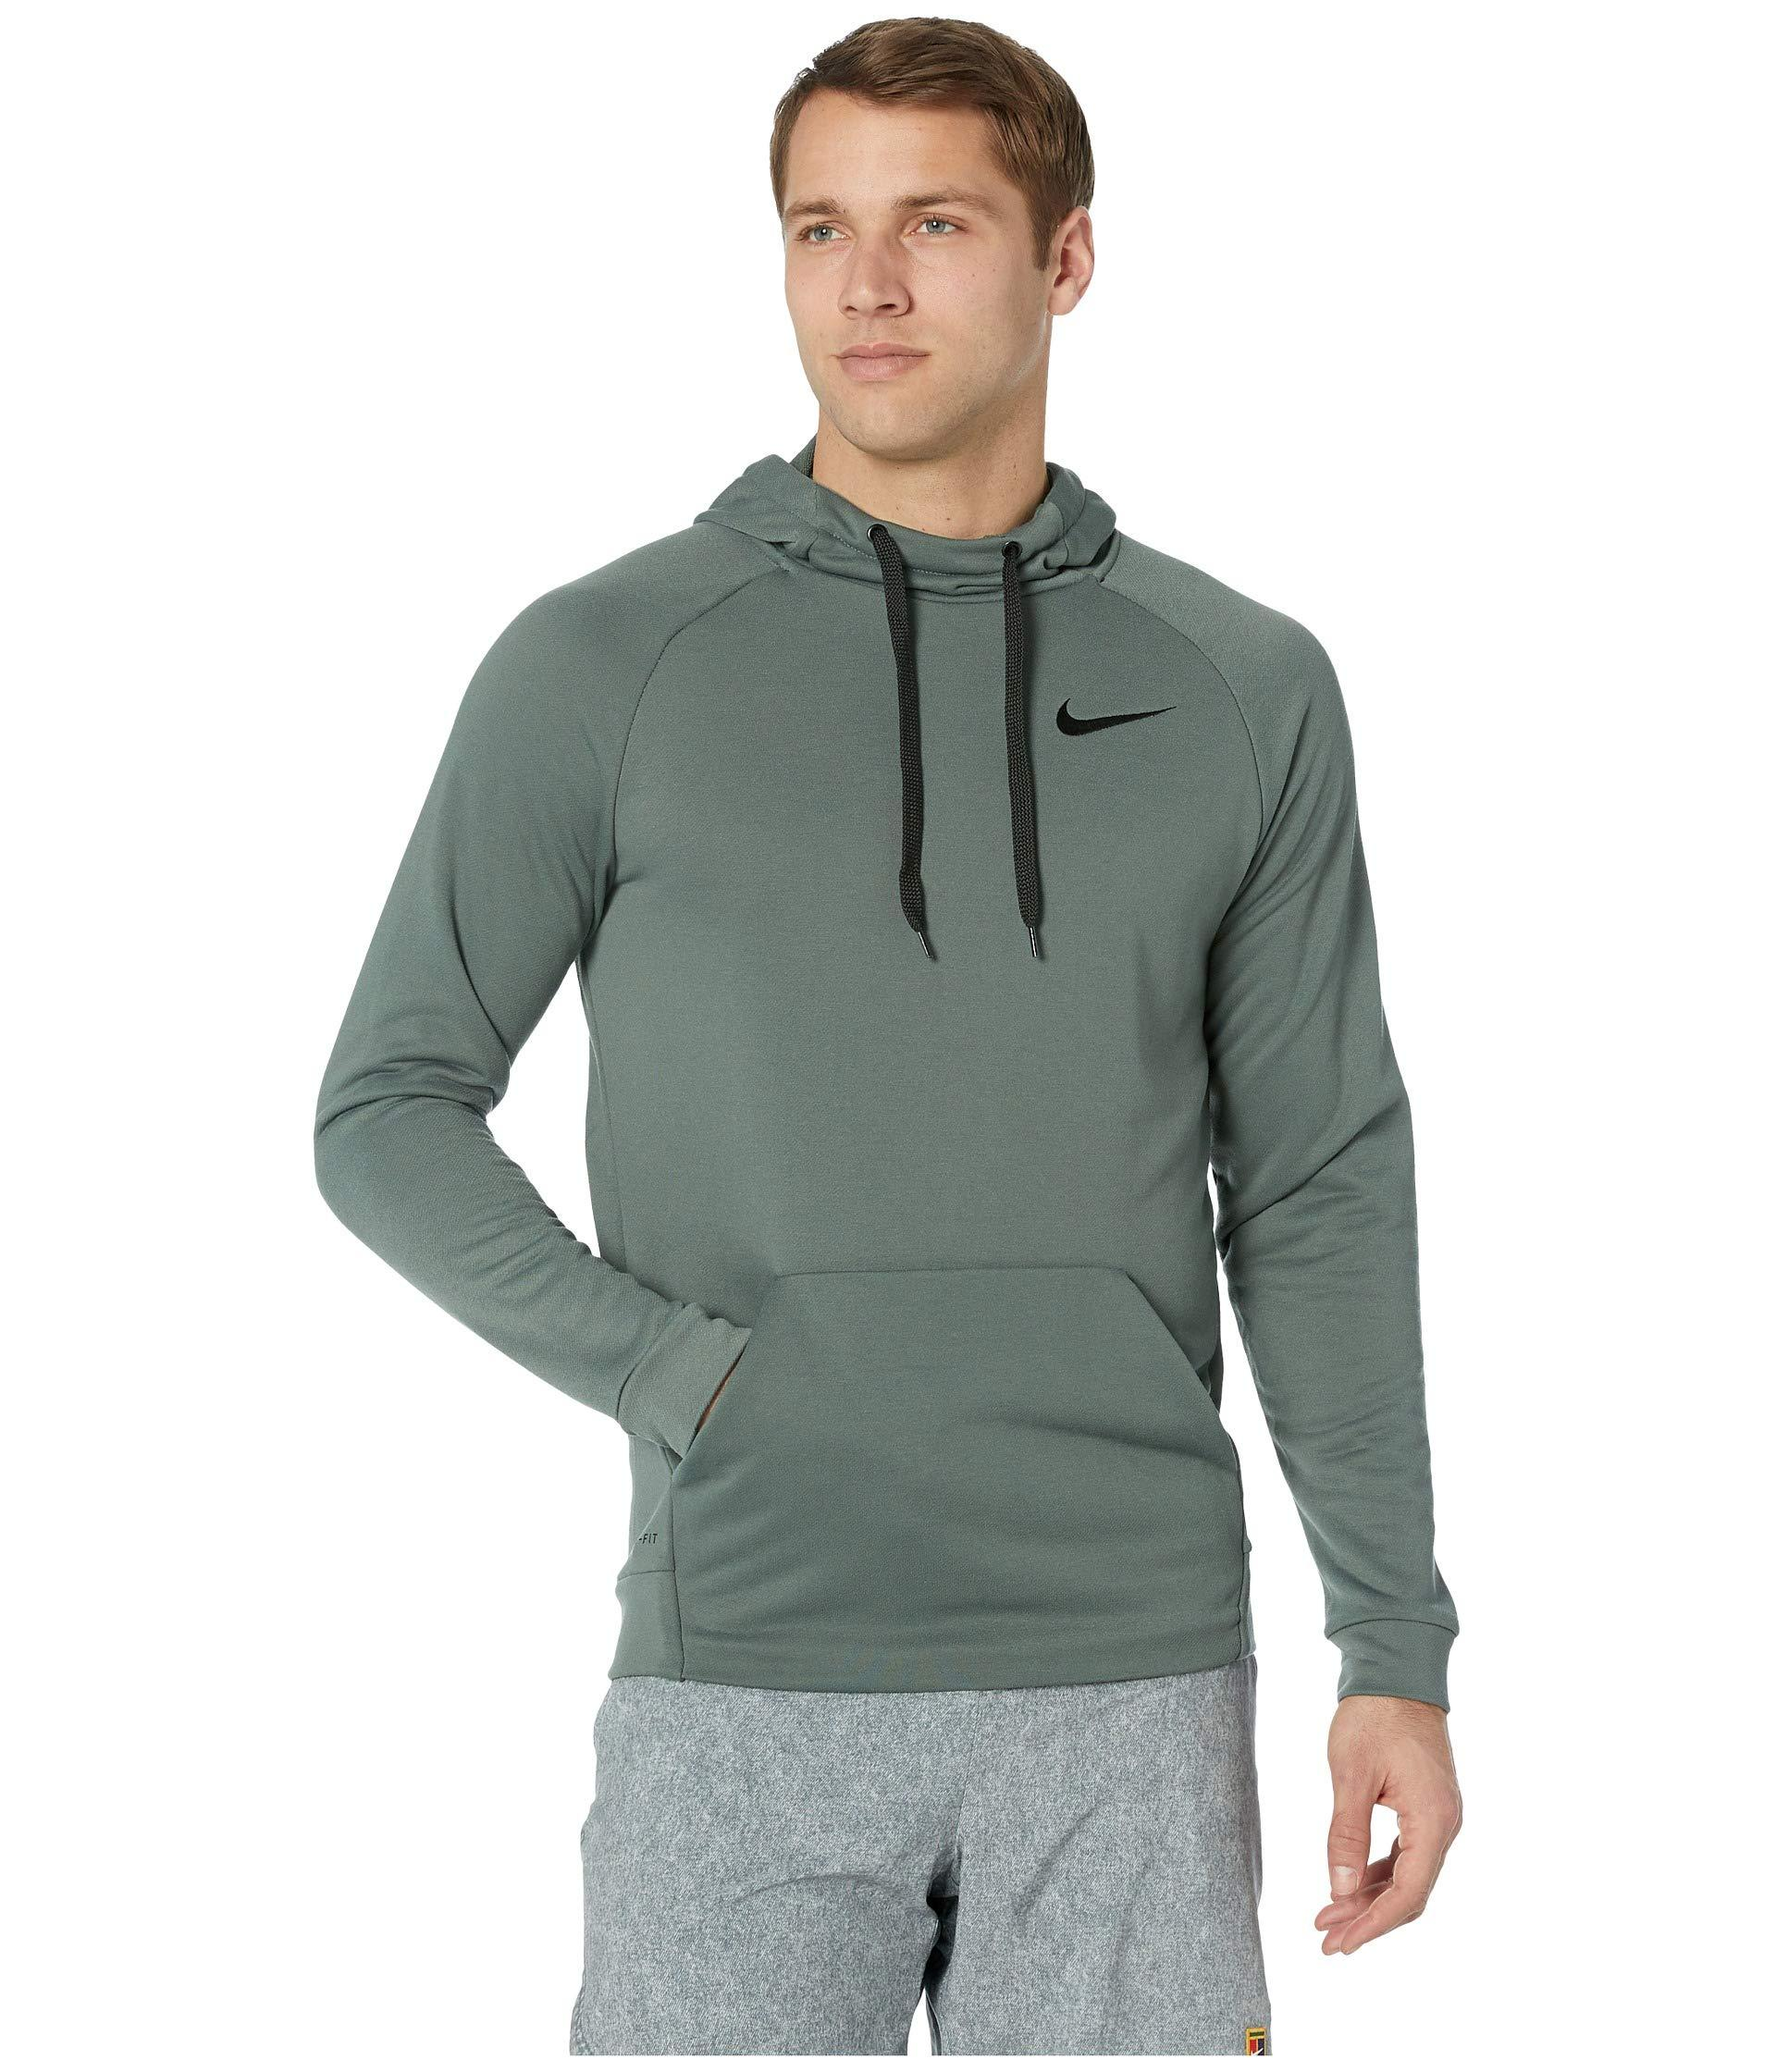 c66ded1746e4 Lyst - Nike Dry Training Pullover Hoodie in Green for Men